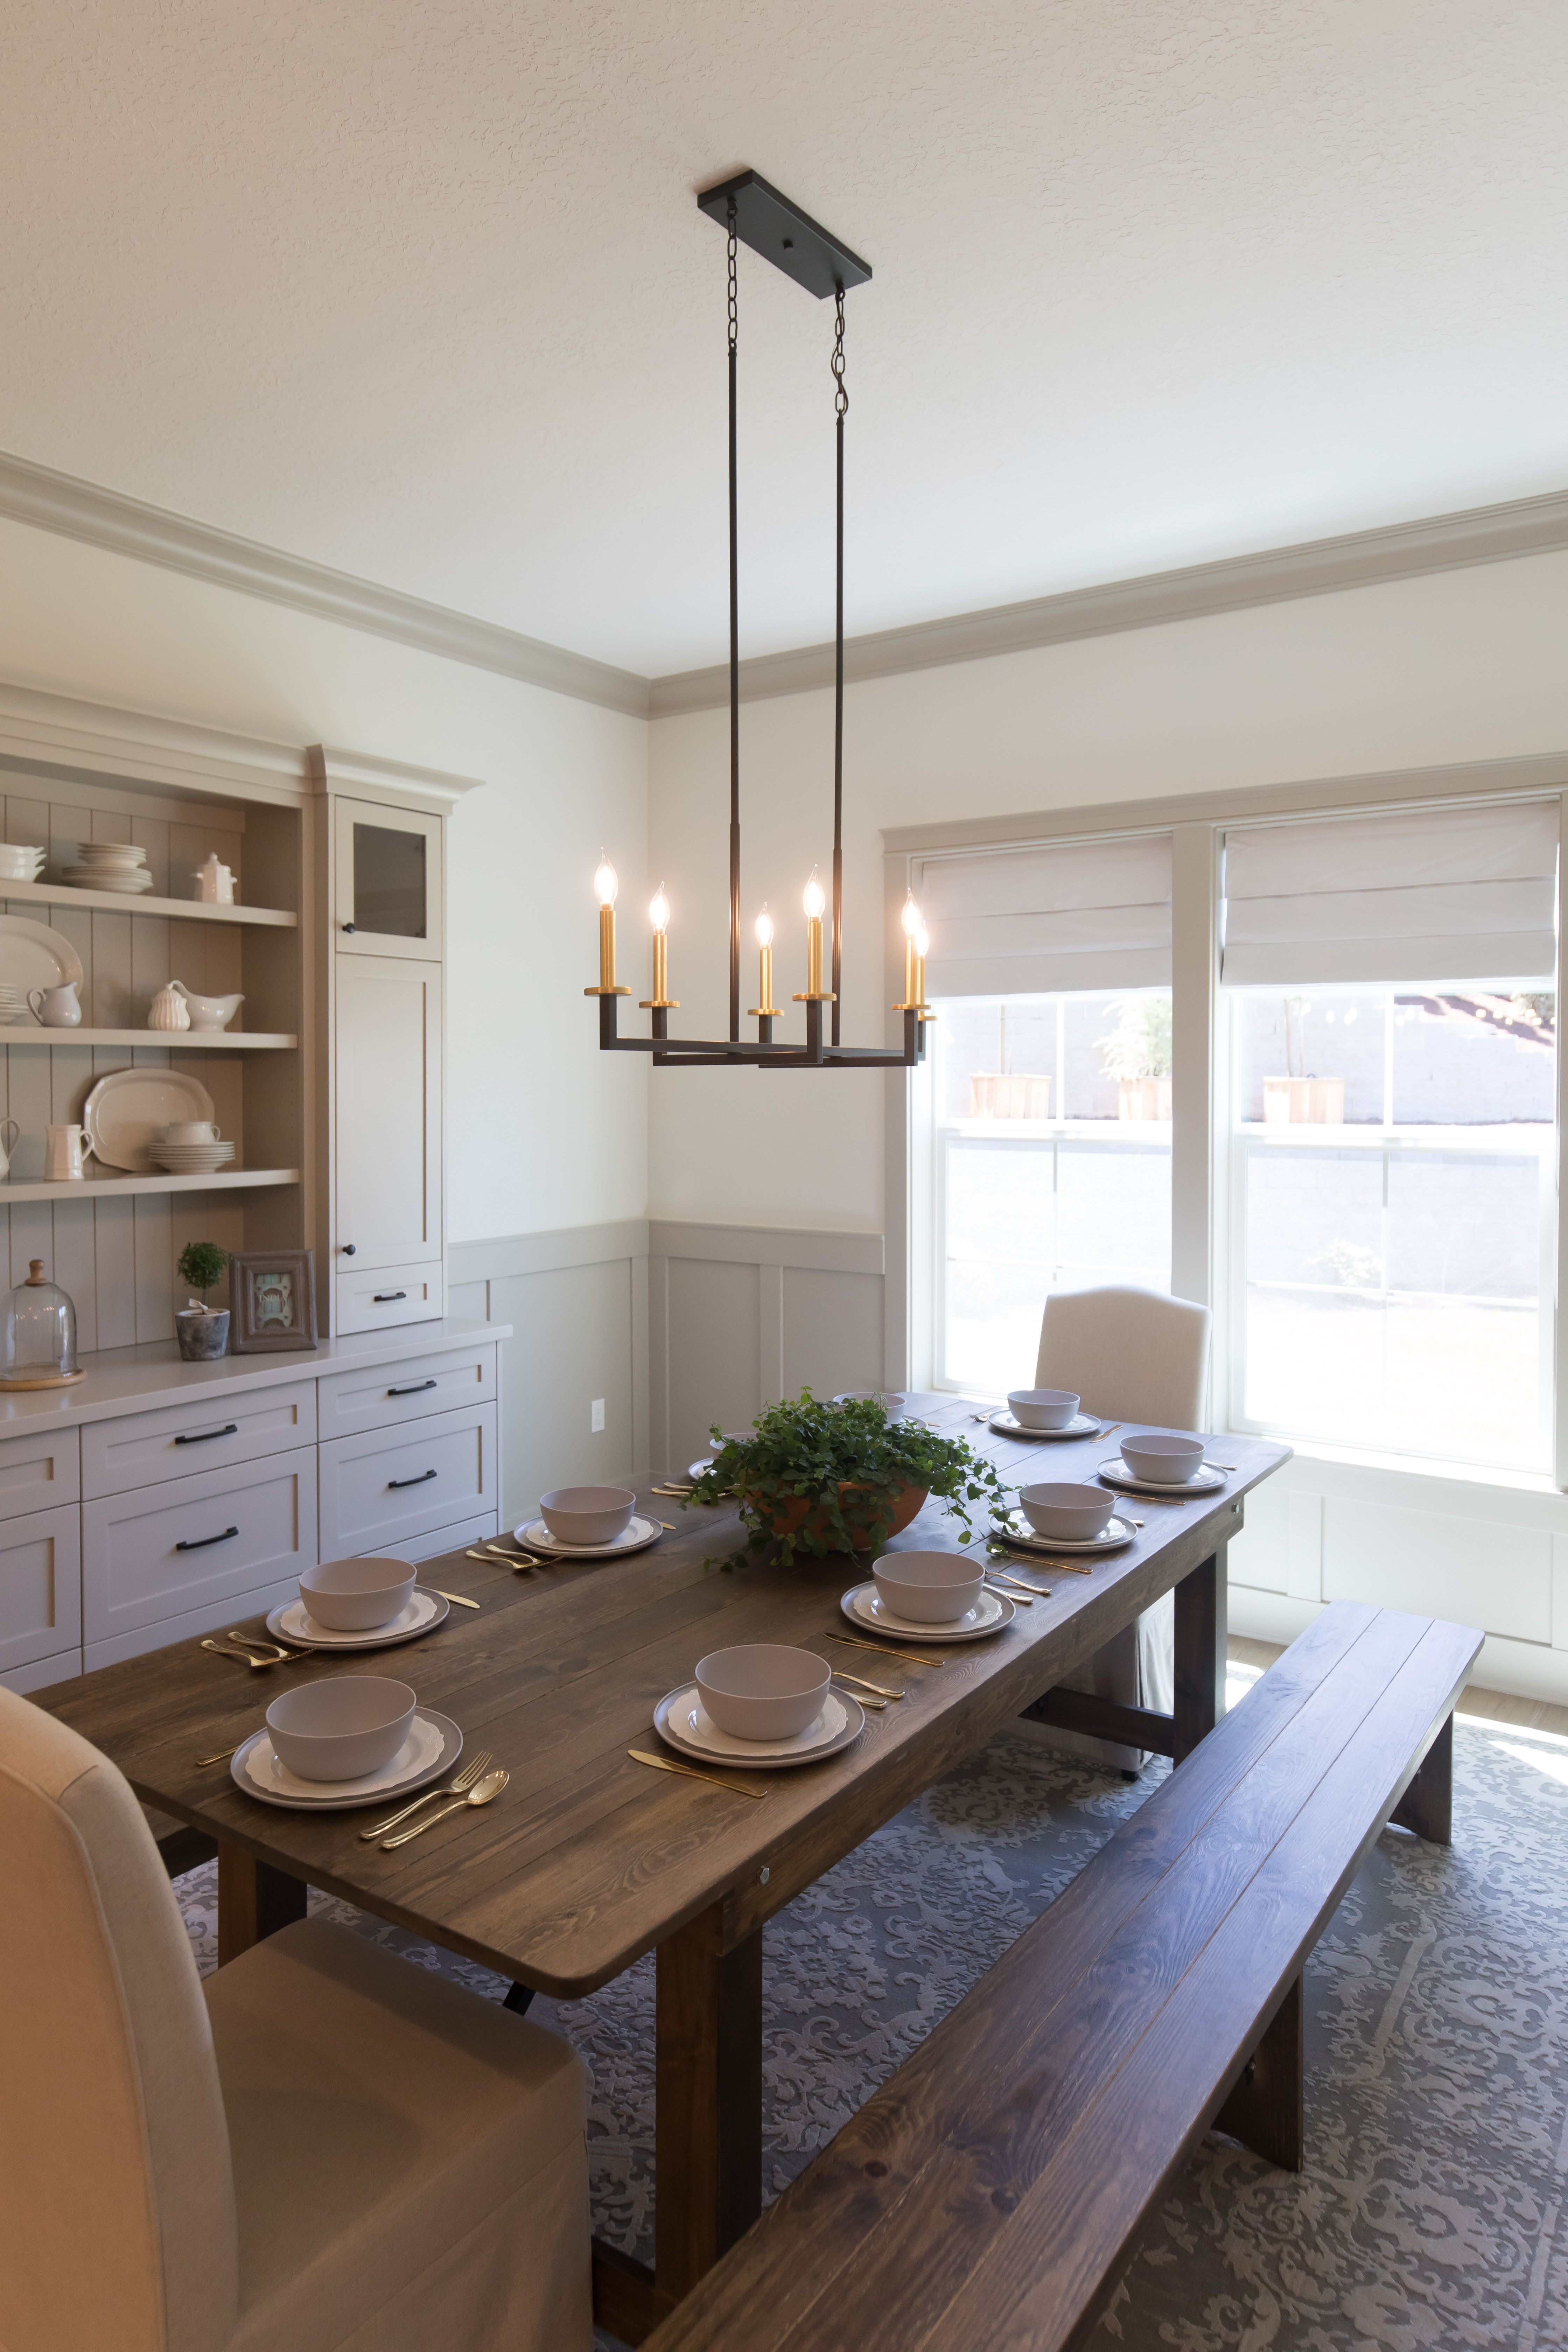 This Modern Stylish Blakely Chandelier Creates A Statement In This